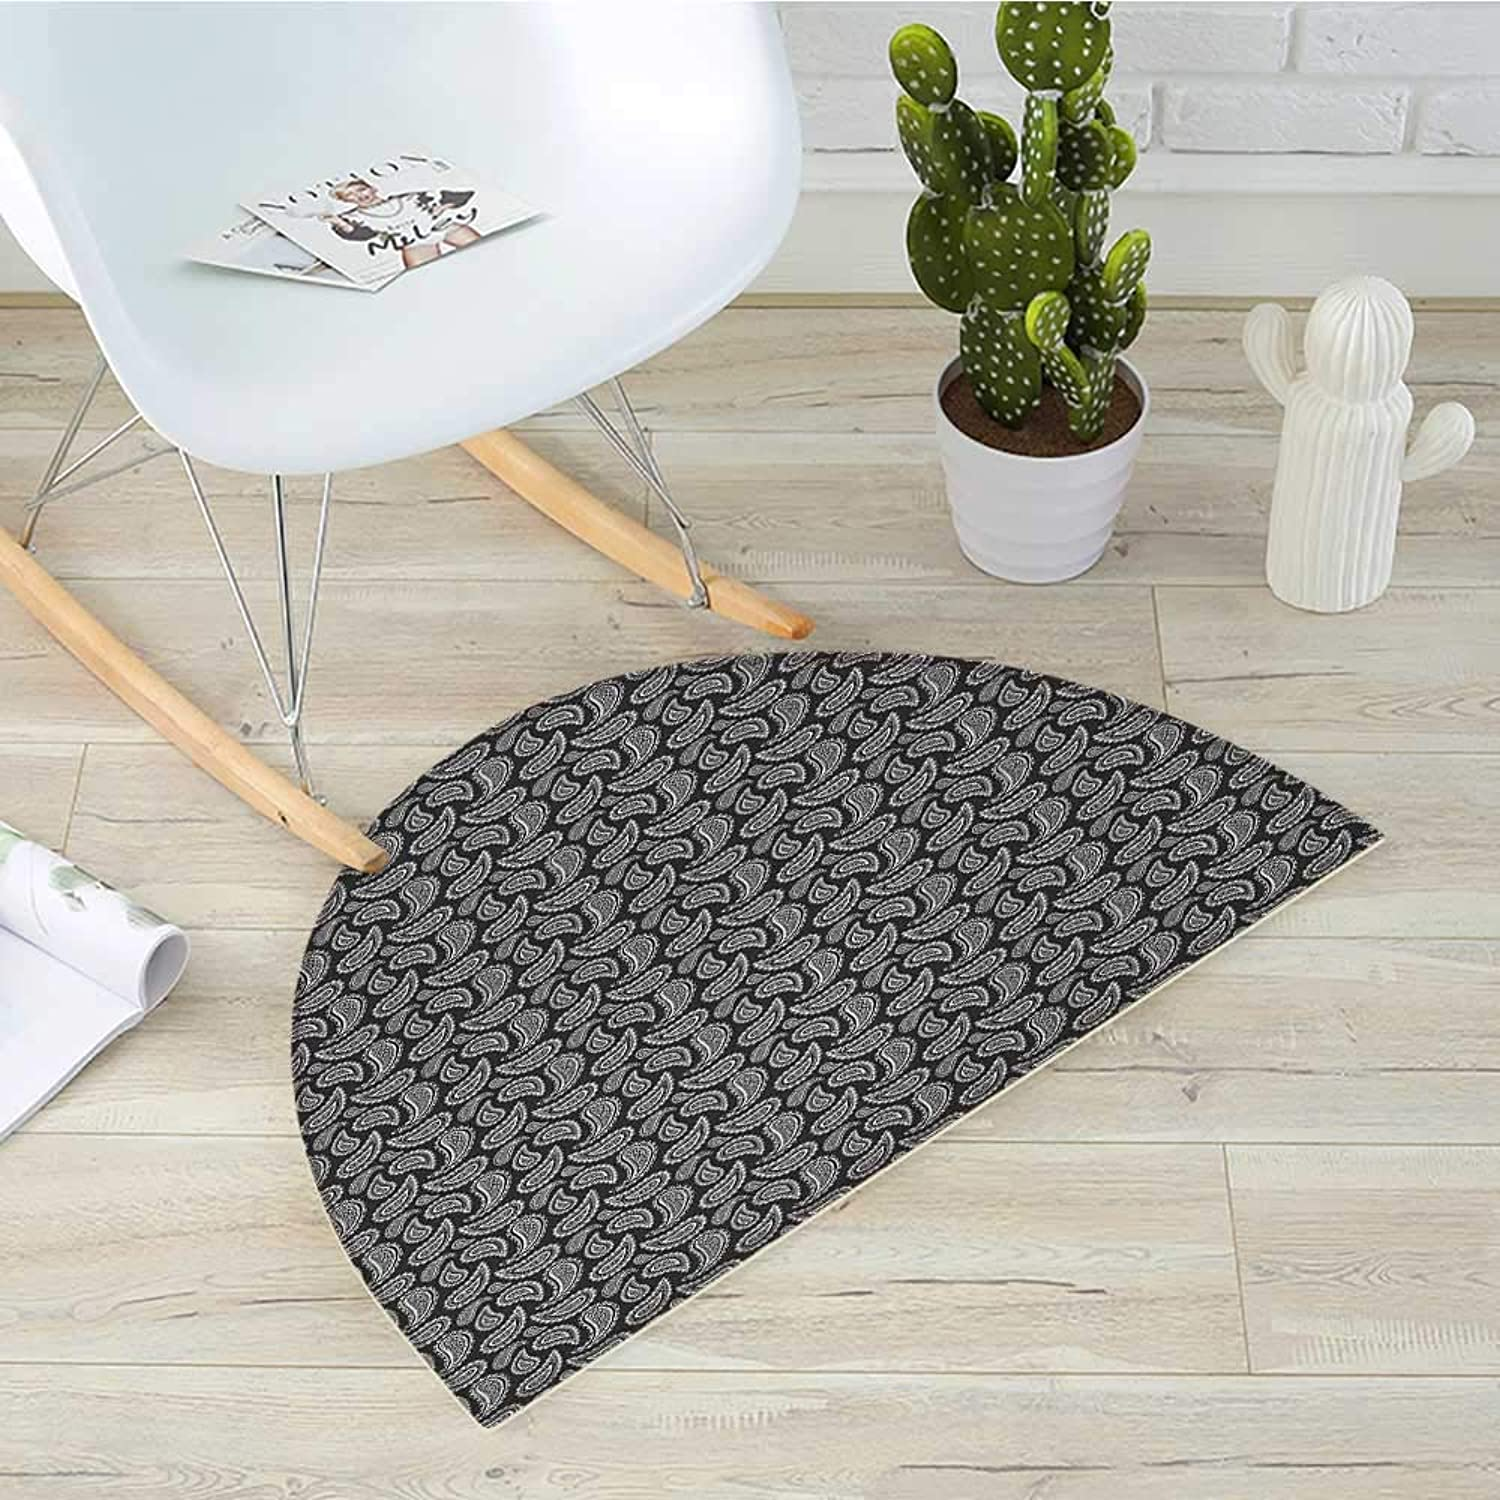 Ethnic Half Round Door mats Leaf Paisley Classic Eastern Oriental with Victorian Effects Iranian Motif Bathroom Mat H 31.5  xD 47.2  Charcoal Grey White